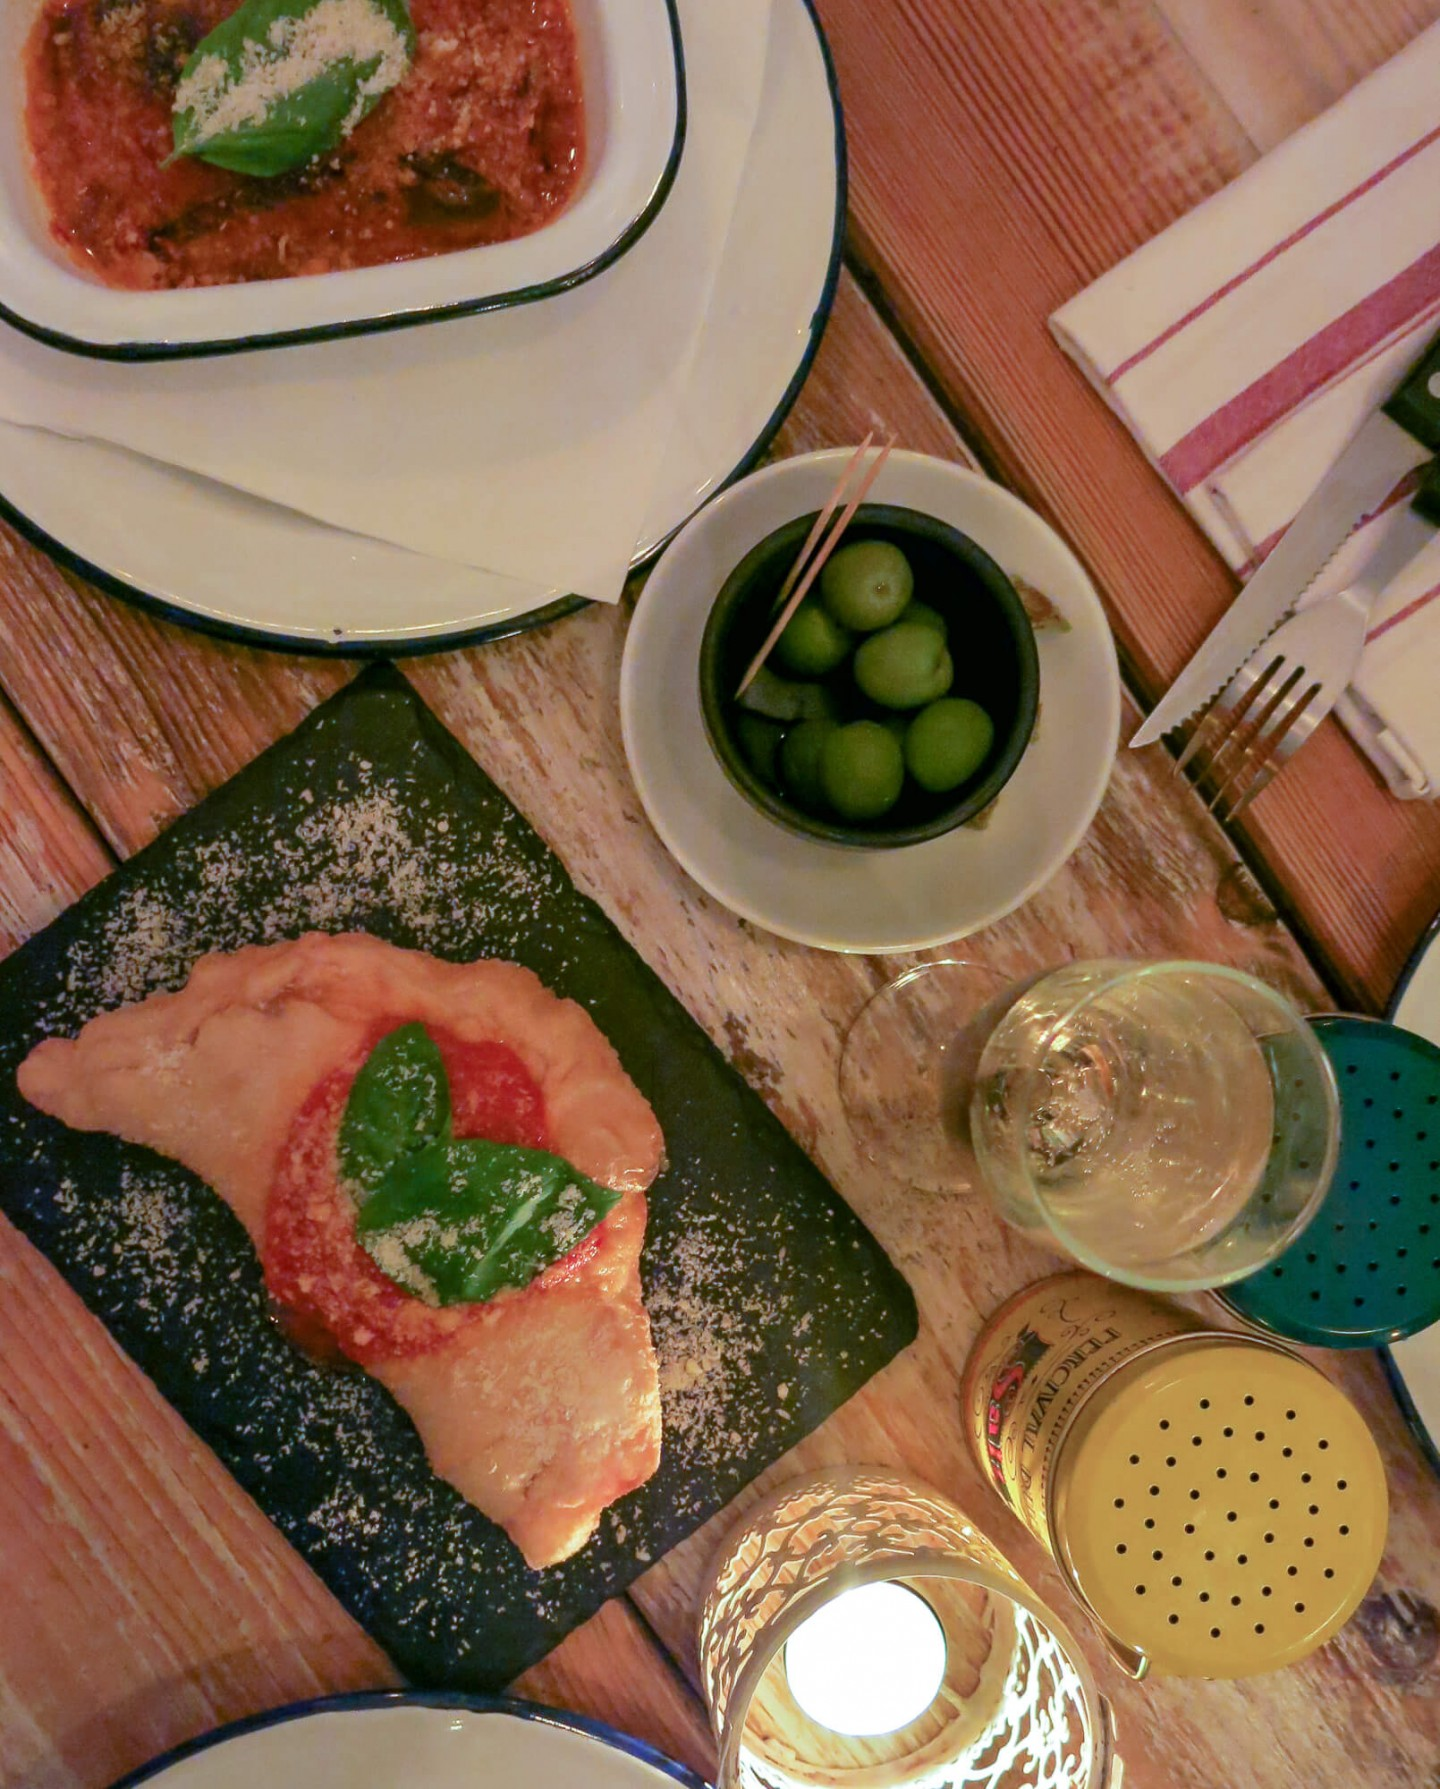 Local Italian restaurant in London, Meridionale in Fulham. Serves great pizza and pasta.